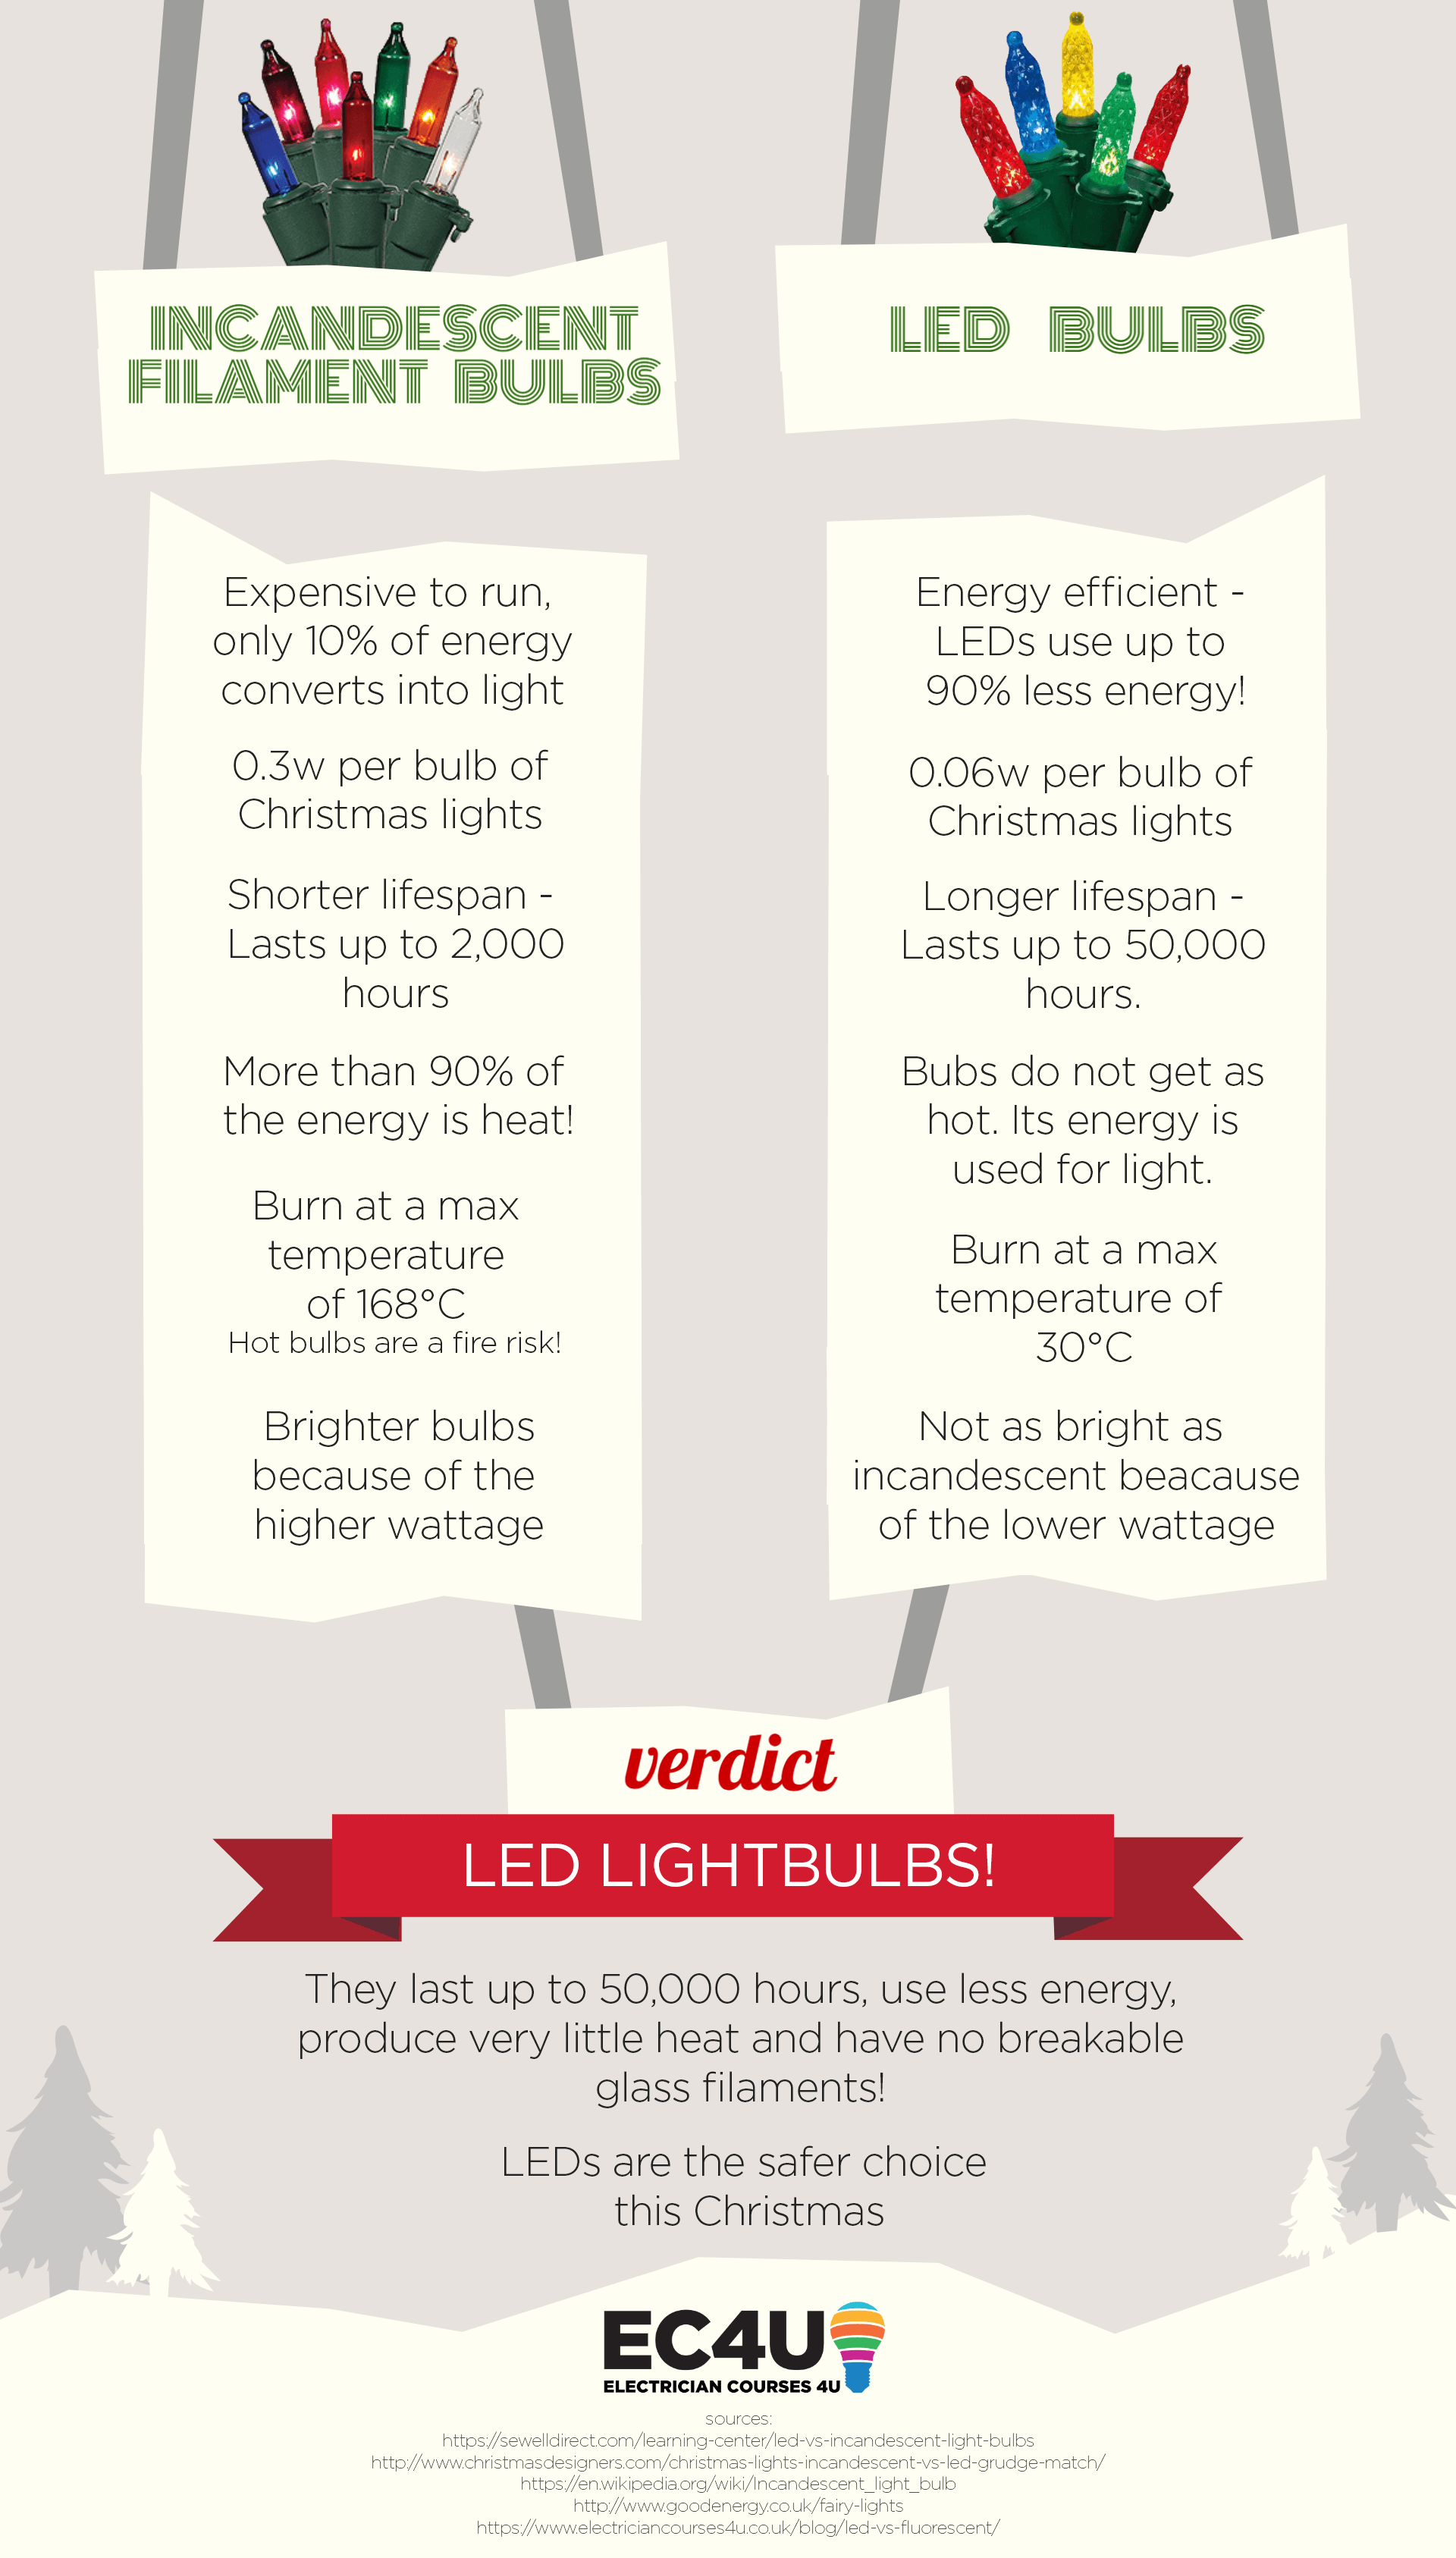 led bulbs vs incandescent filament lighting